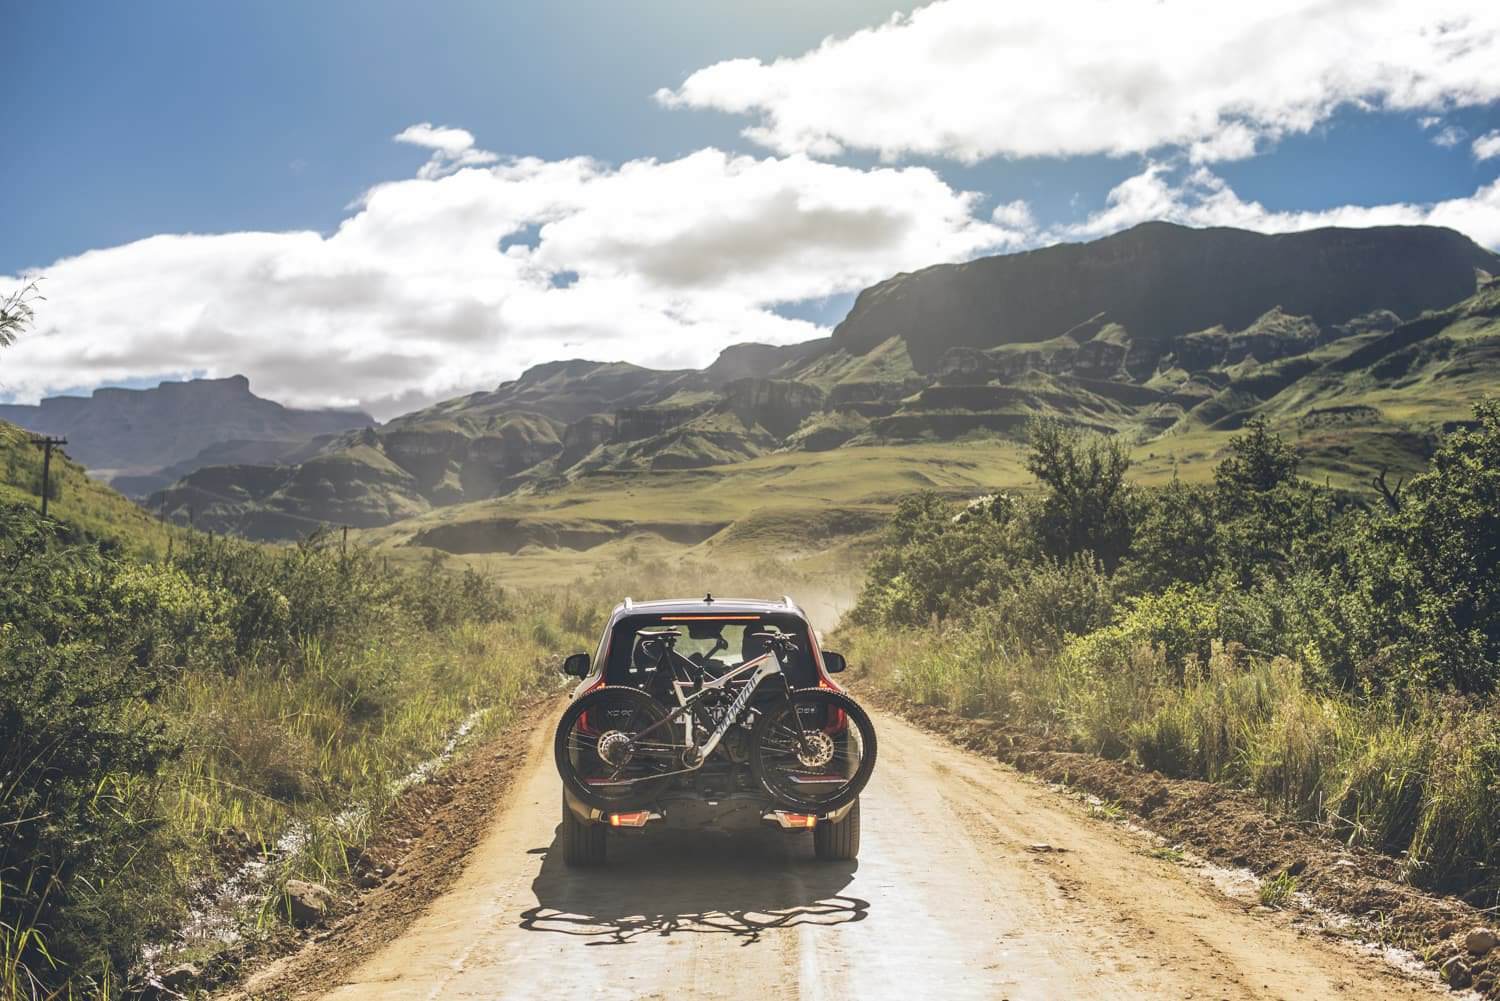 sani-pass-desmond-louw-bicycling-magazine-wowrides-0018